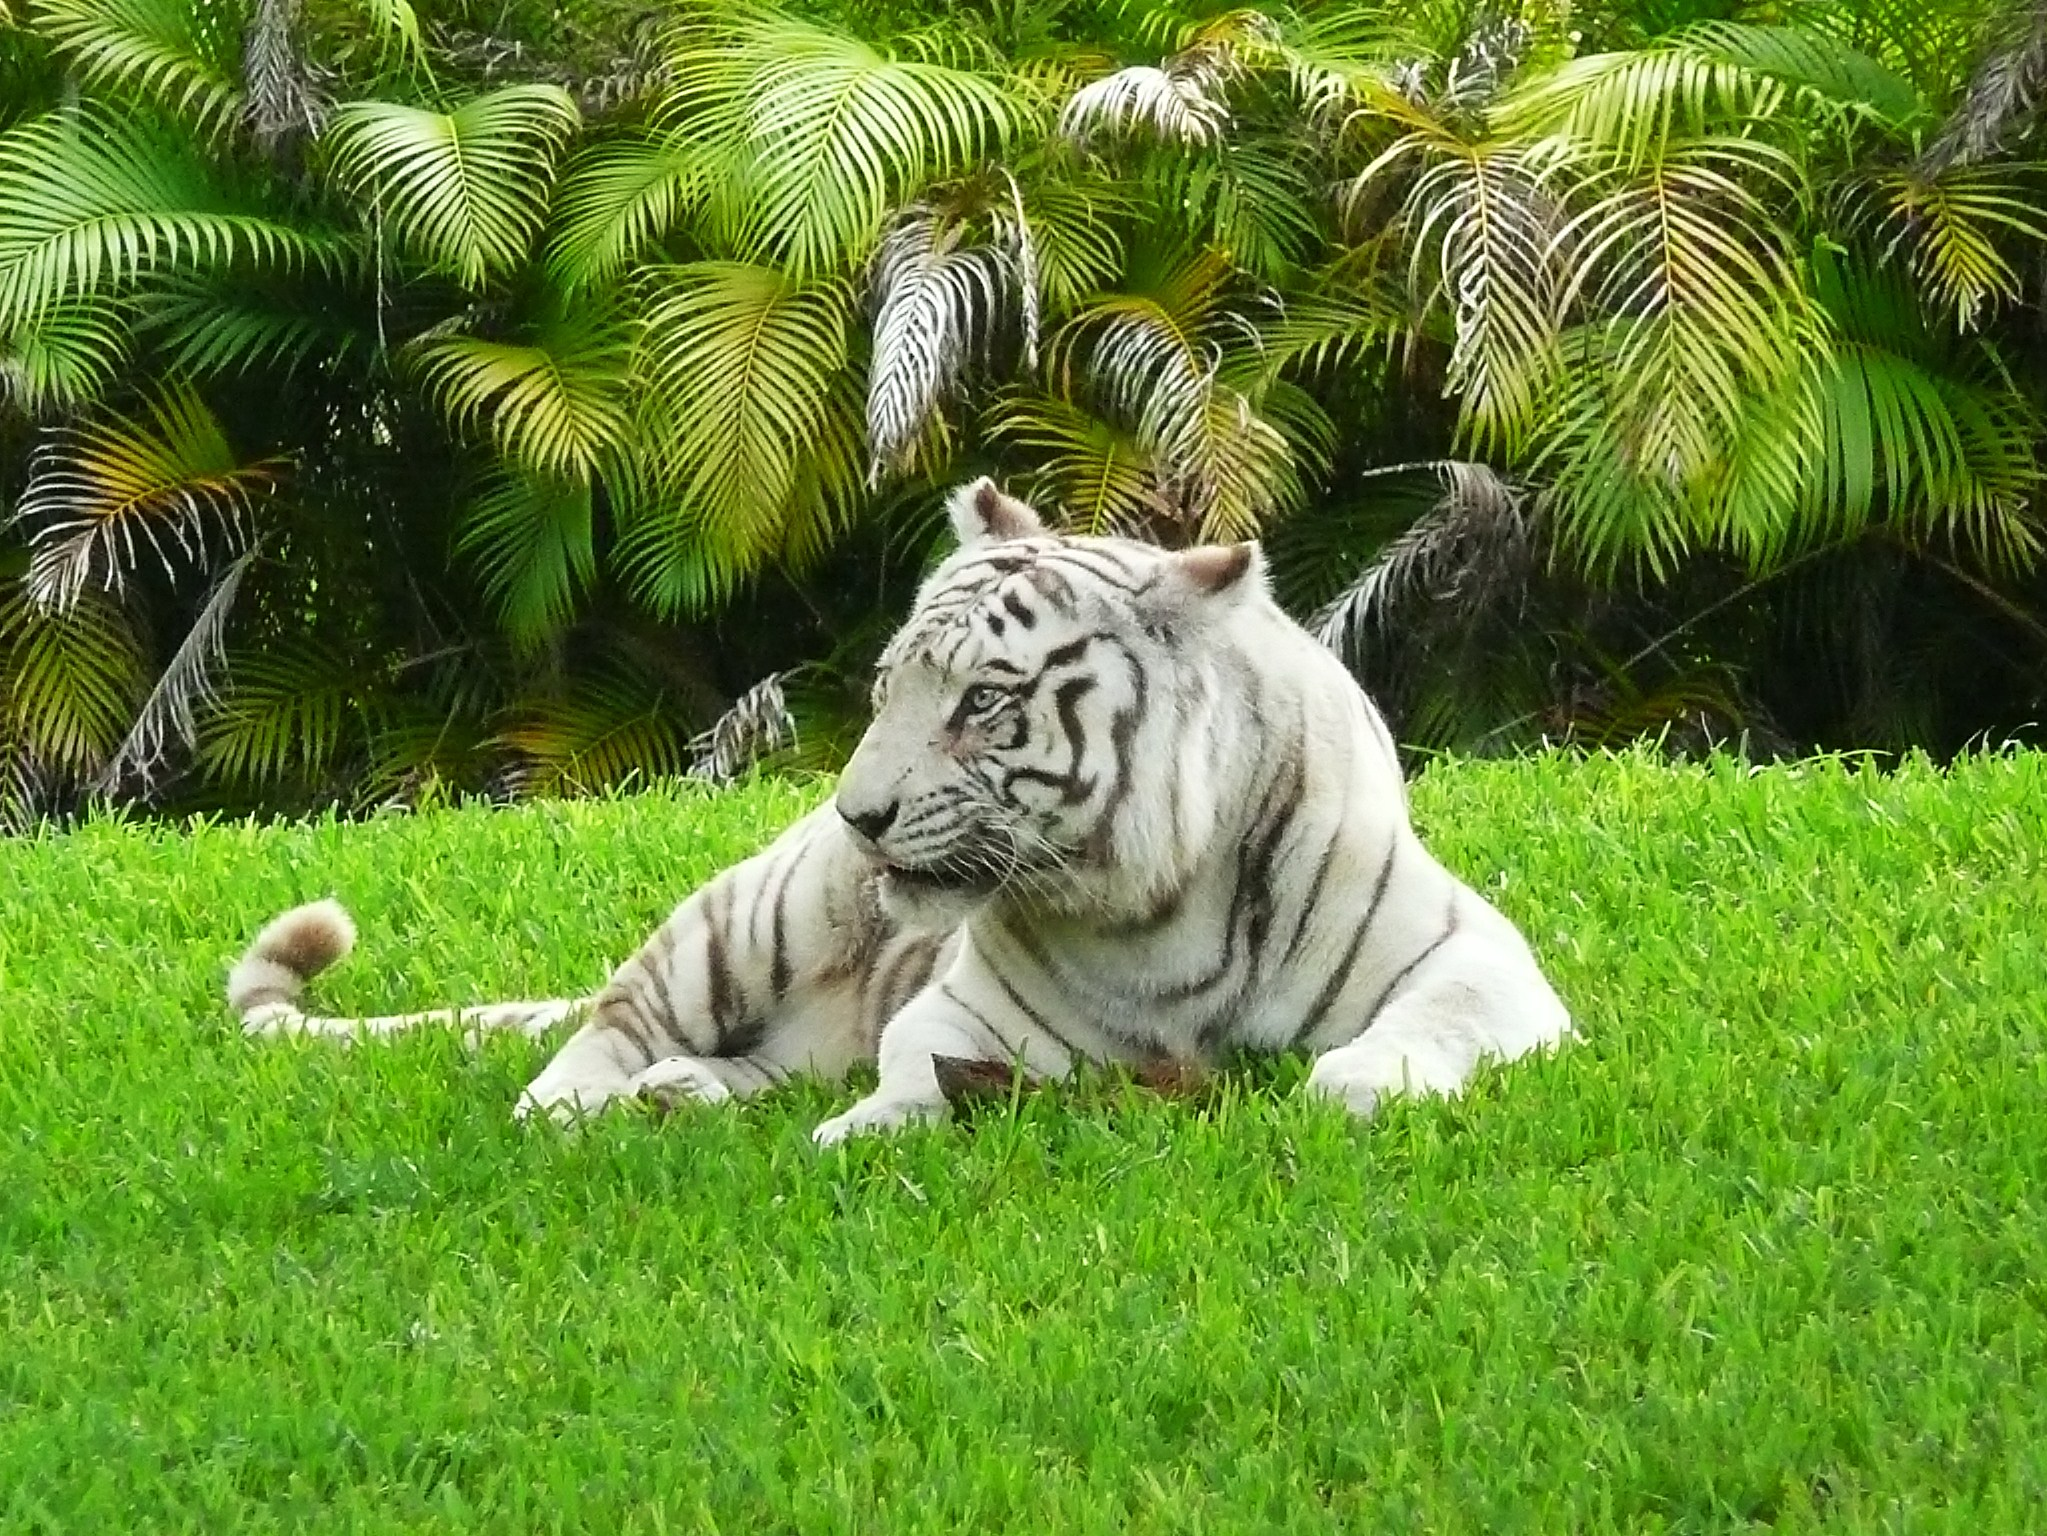 White Furious tiger images